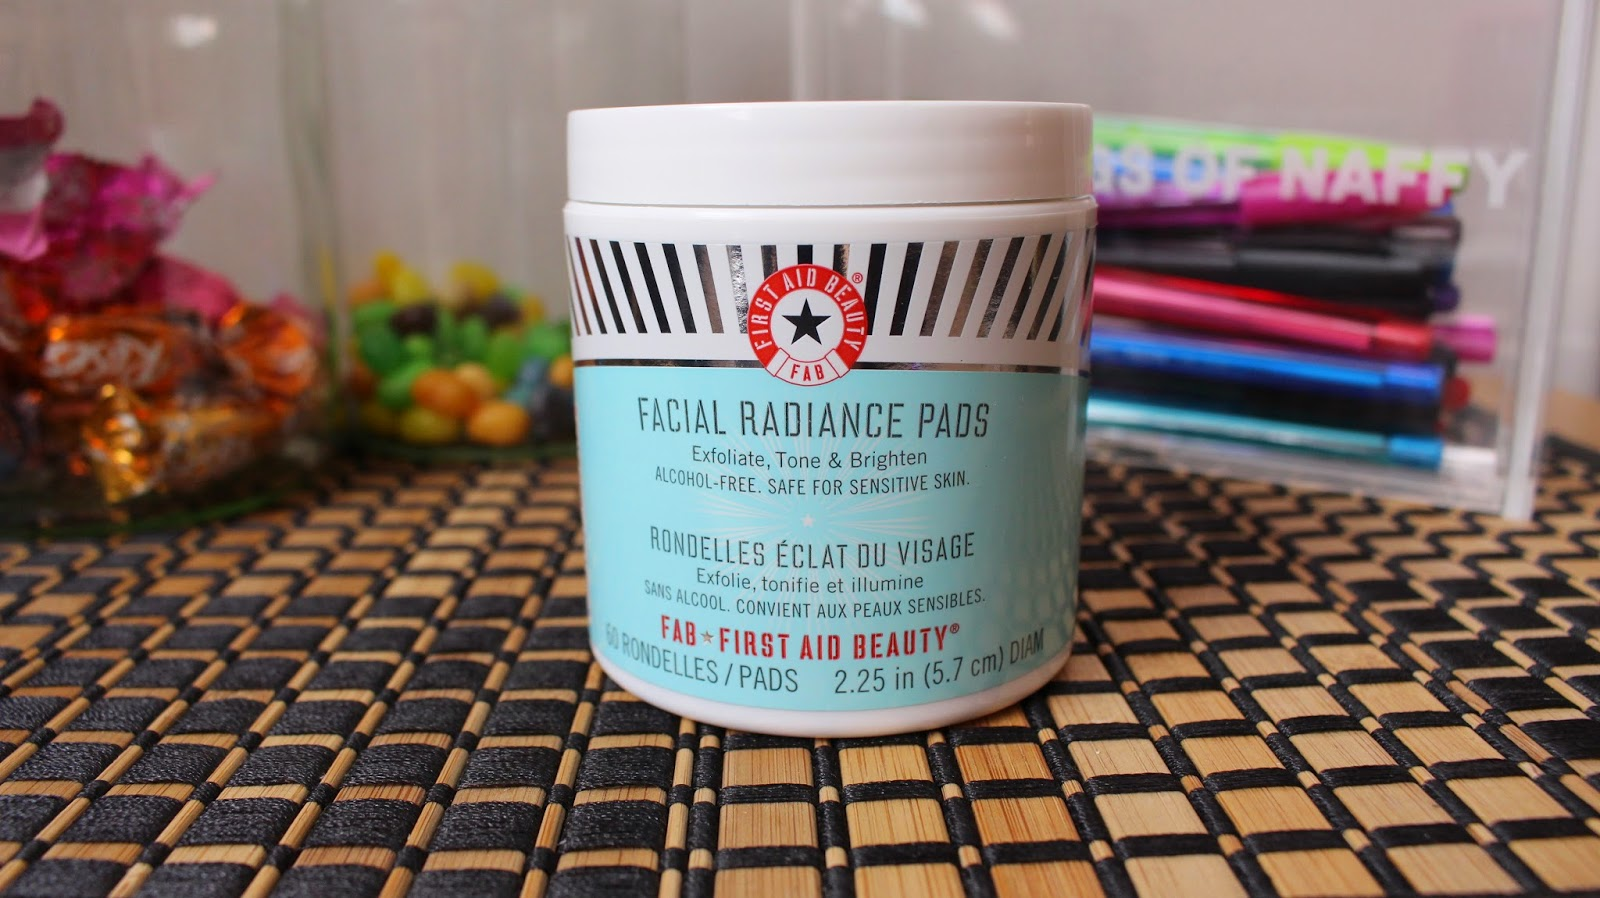 First-Aid-Beauty-Facial-Radiance-Pads-1